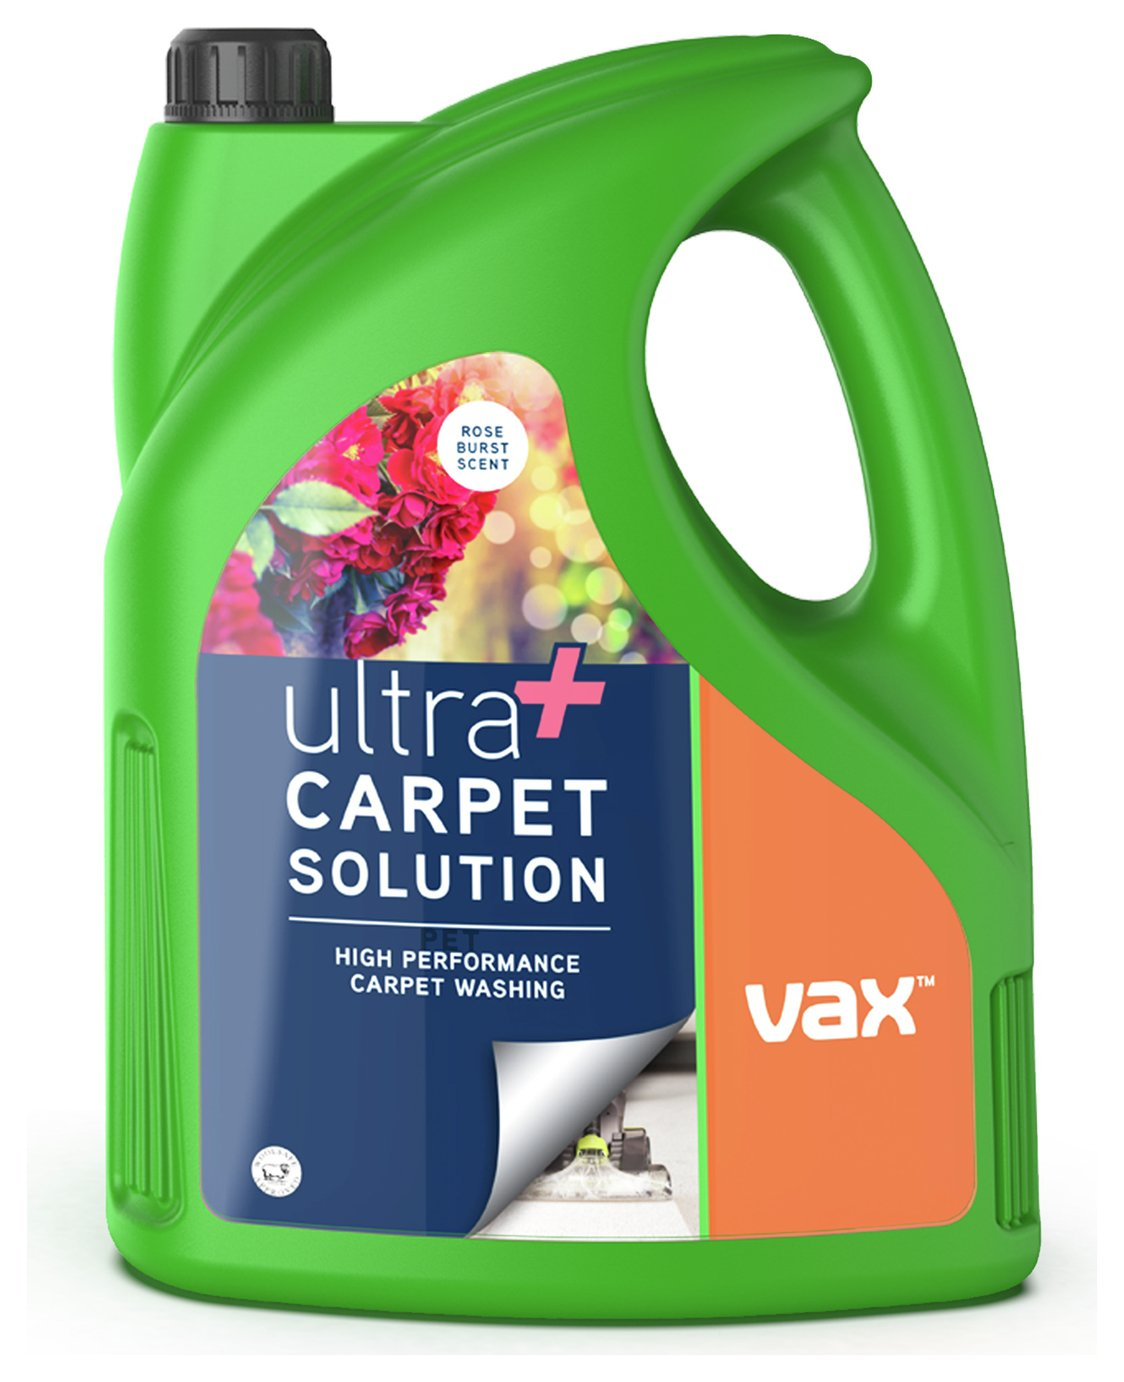 Vax Ultra+ 4L Carpet Cleaning Solution from Vax